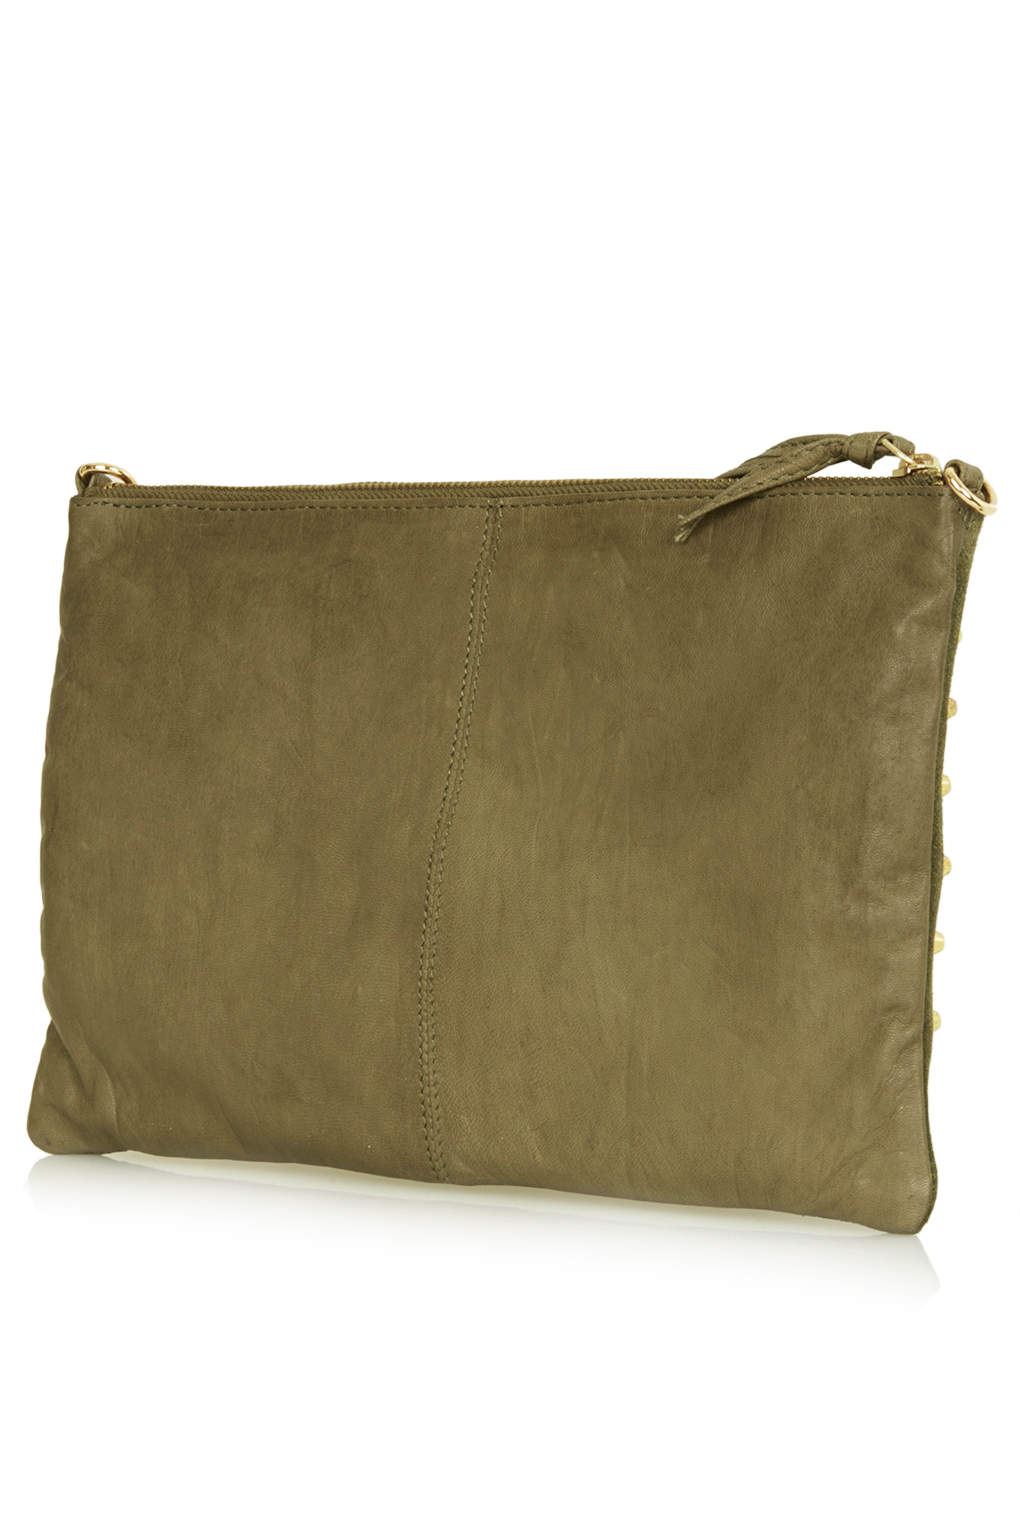 Topshop Studded Suede Clutch Bag In Khaki Natural Lyst